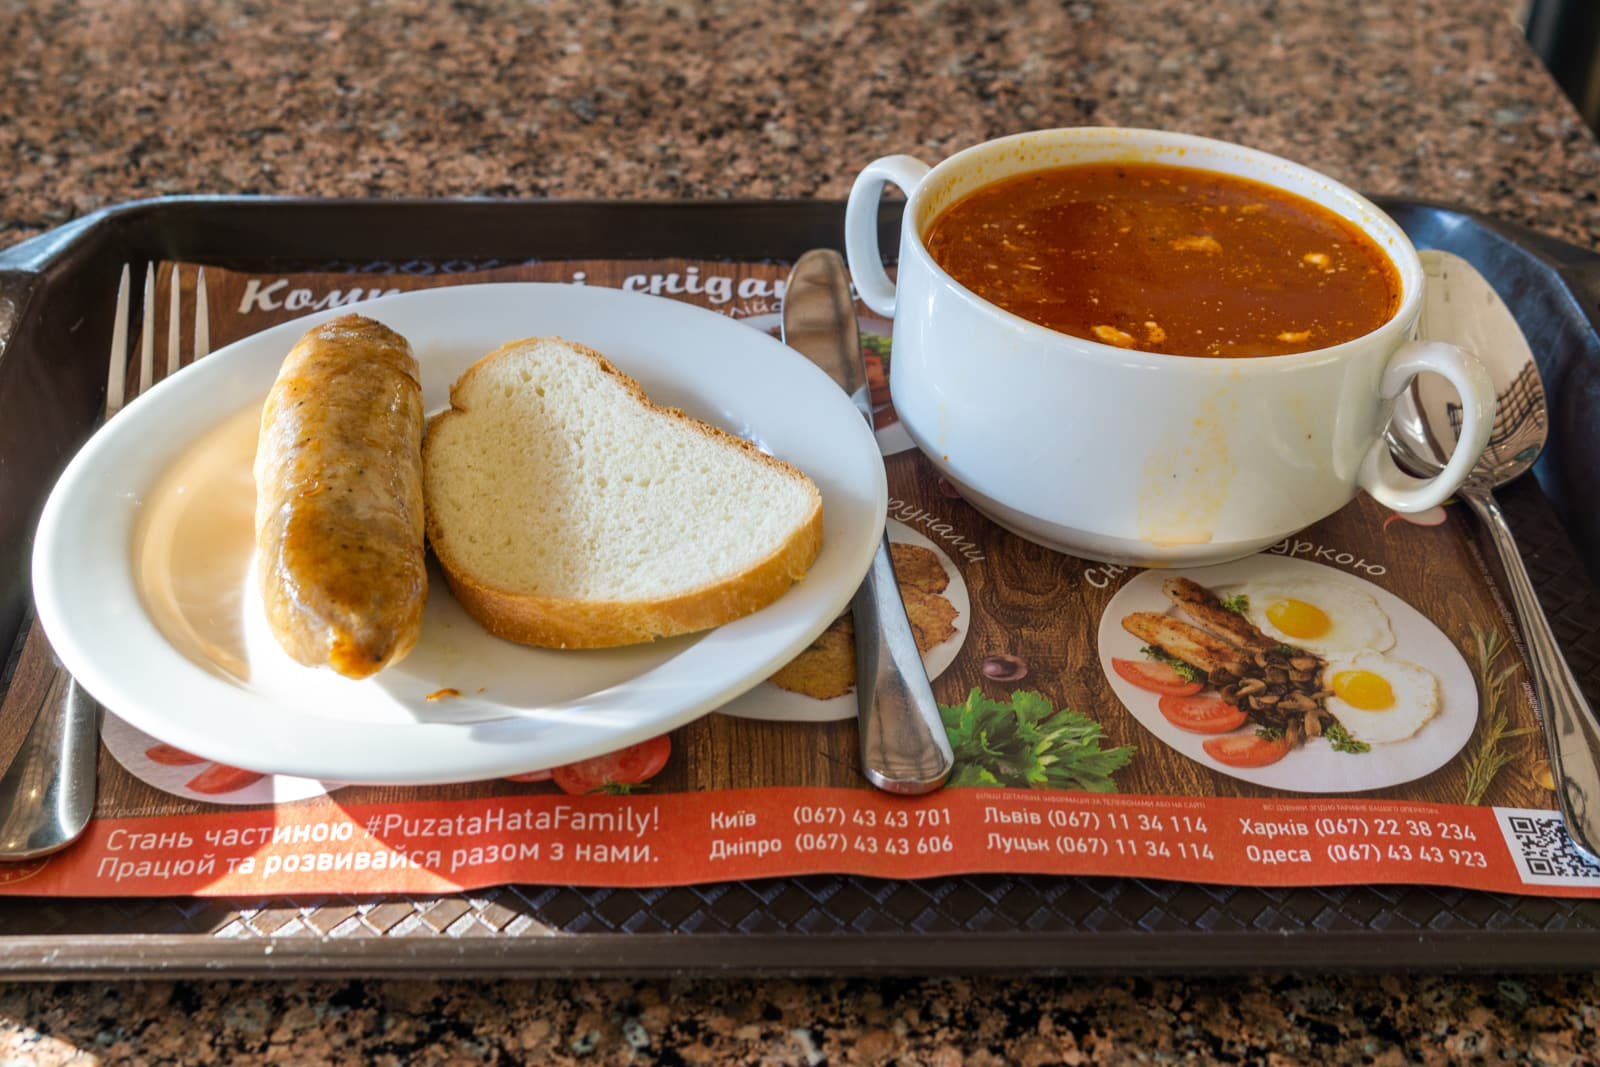 A typical cafeteria meal in Ukraine with sausage and borsch and bread